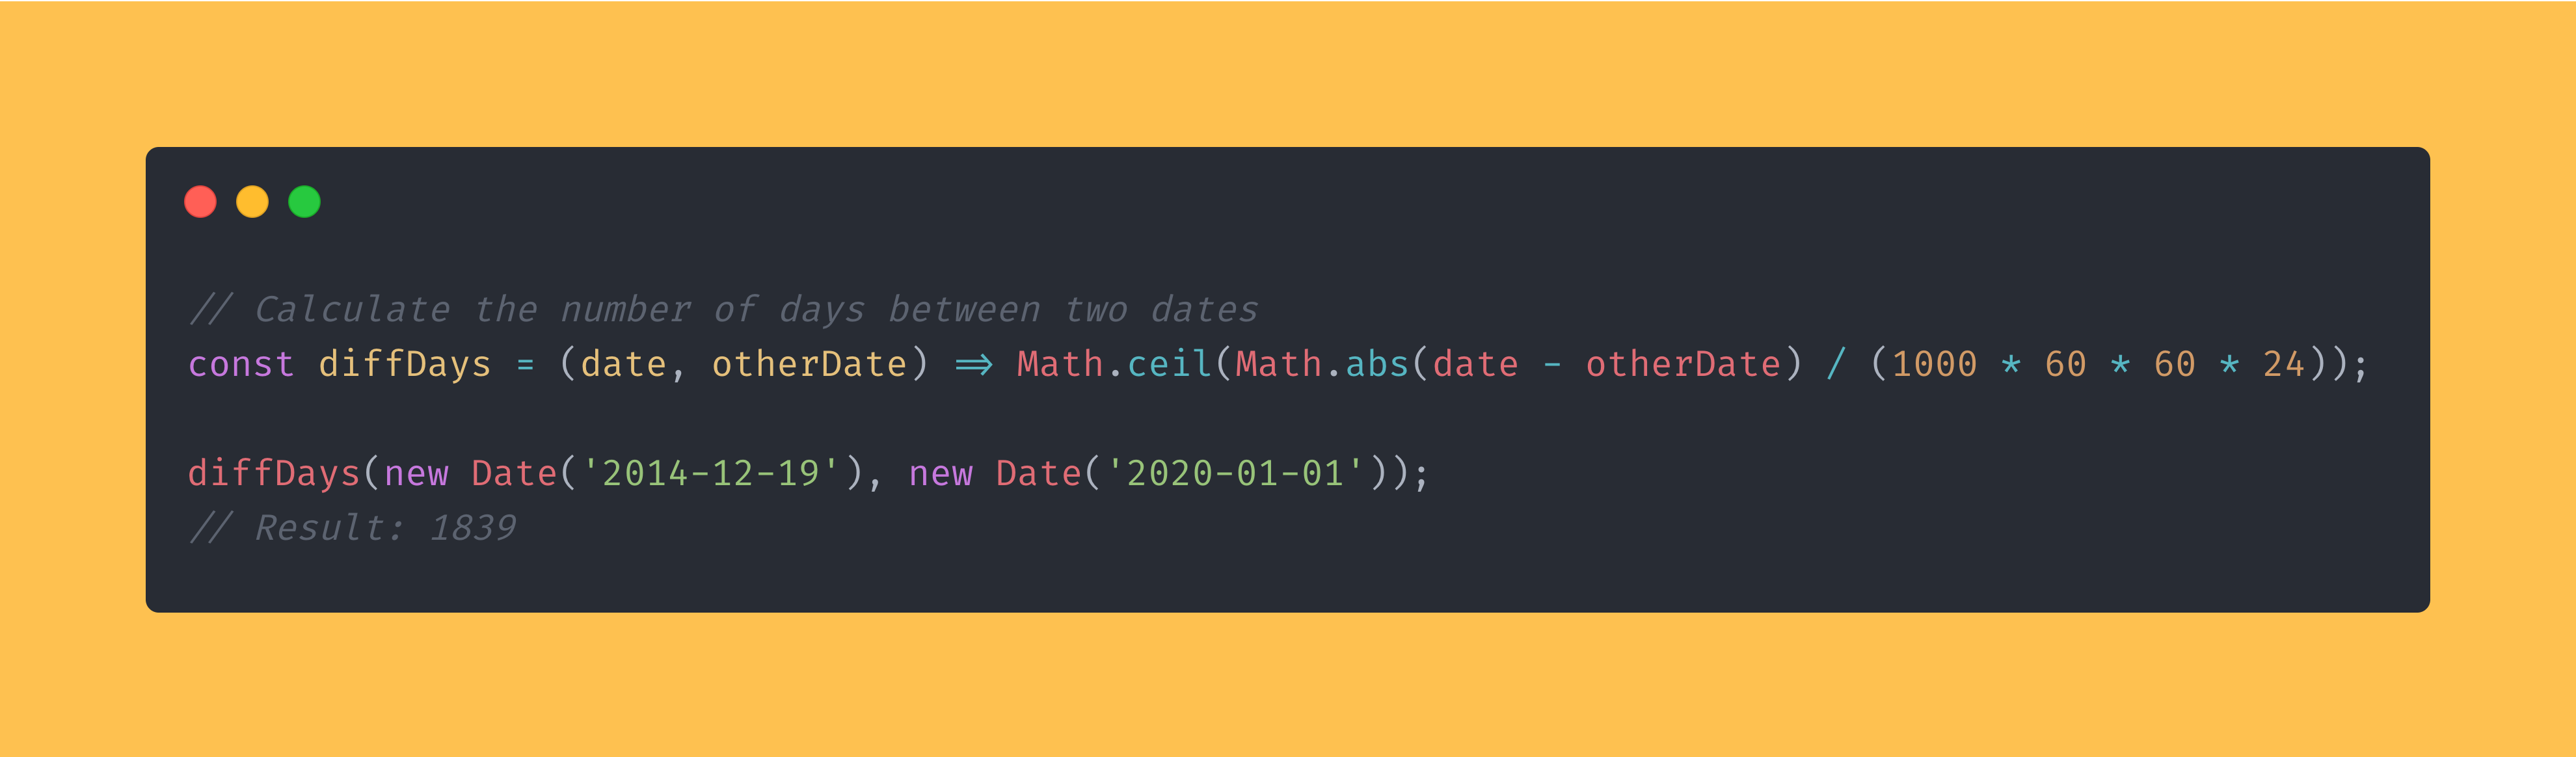 JavaScript function that calculates the number of days between 2 dates